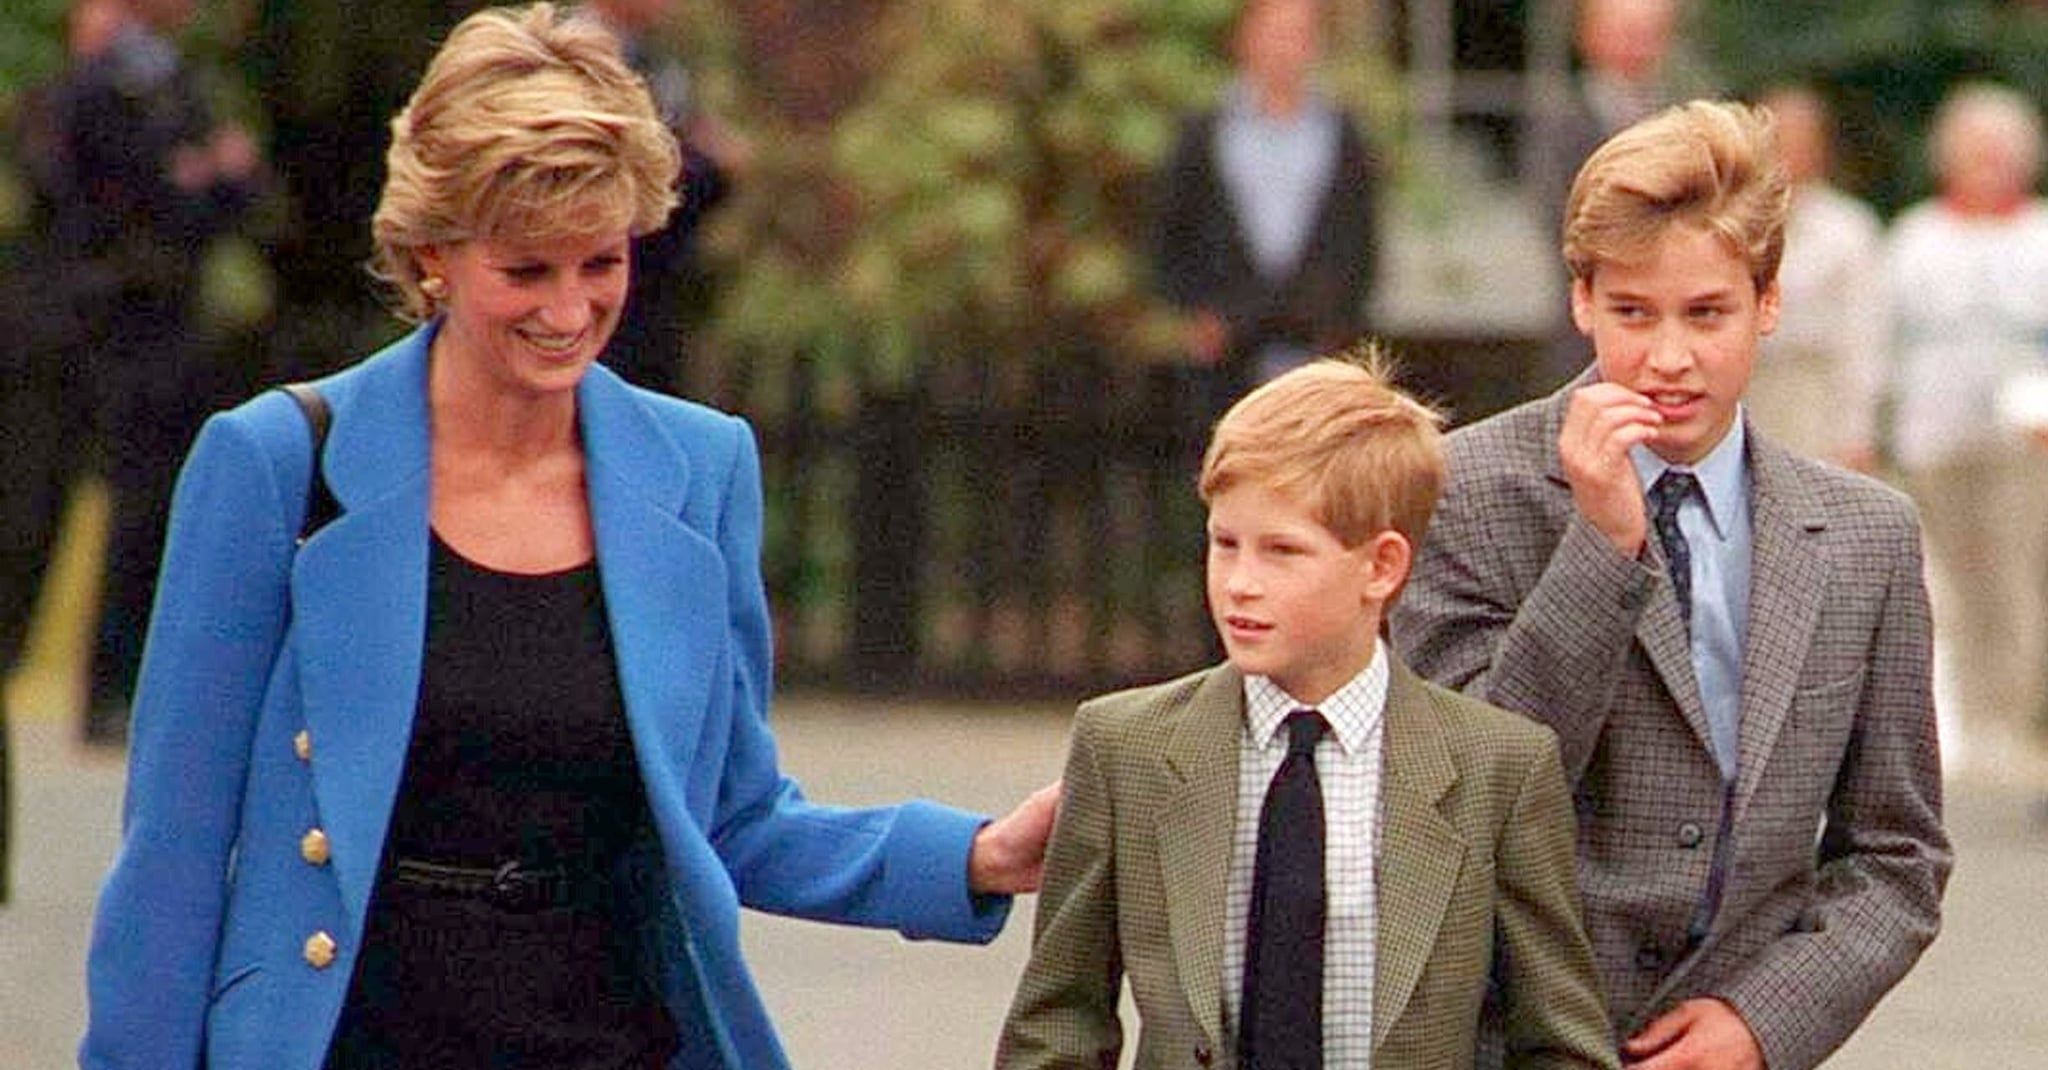 Princes Harry And William's Rift – Royal Expert Says Princess Diana Would Be 'Extremely Disappointed!'